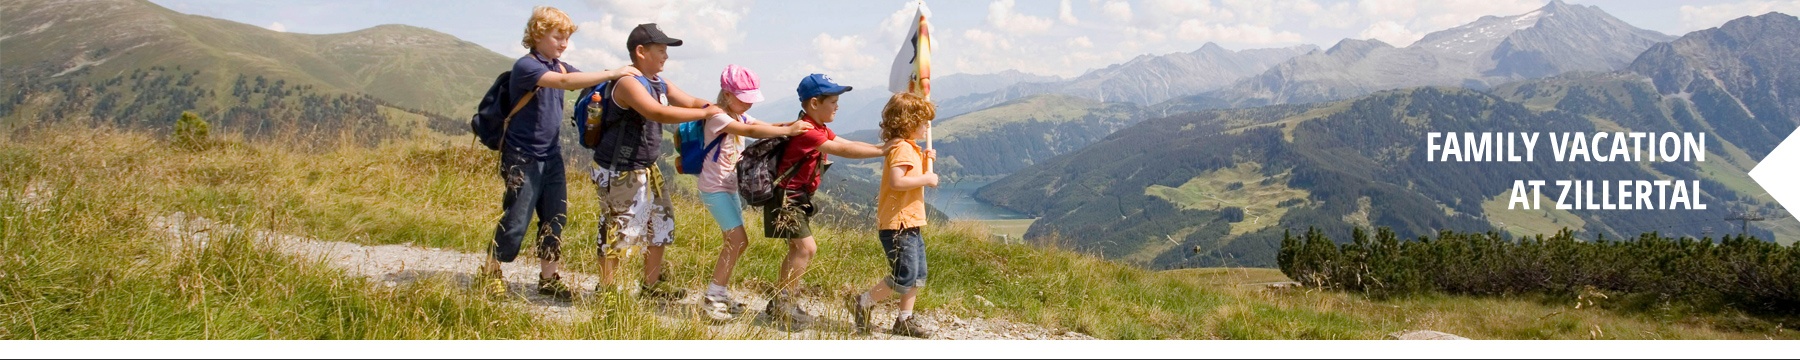 family vacation at zillertal